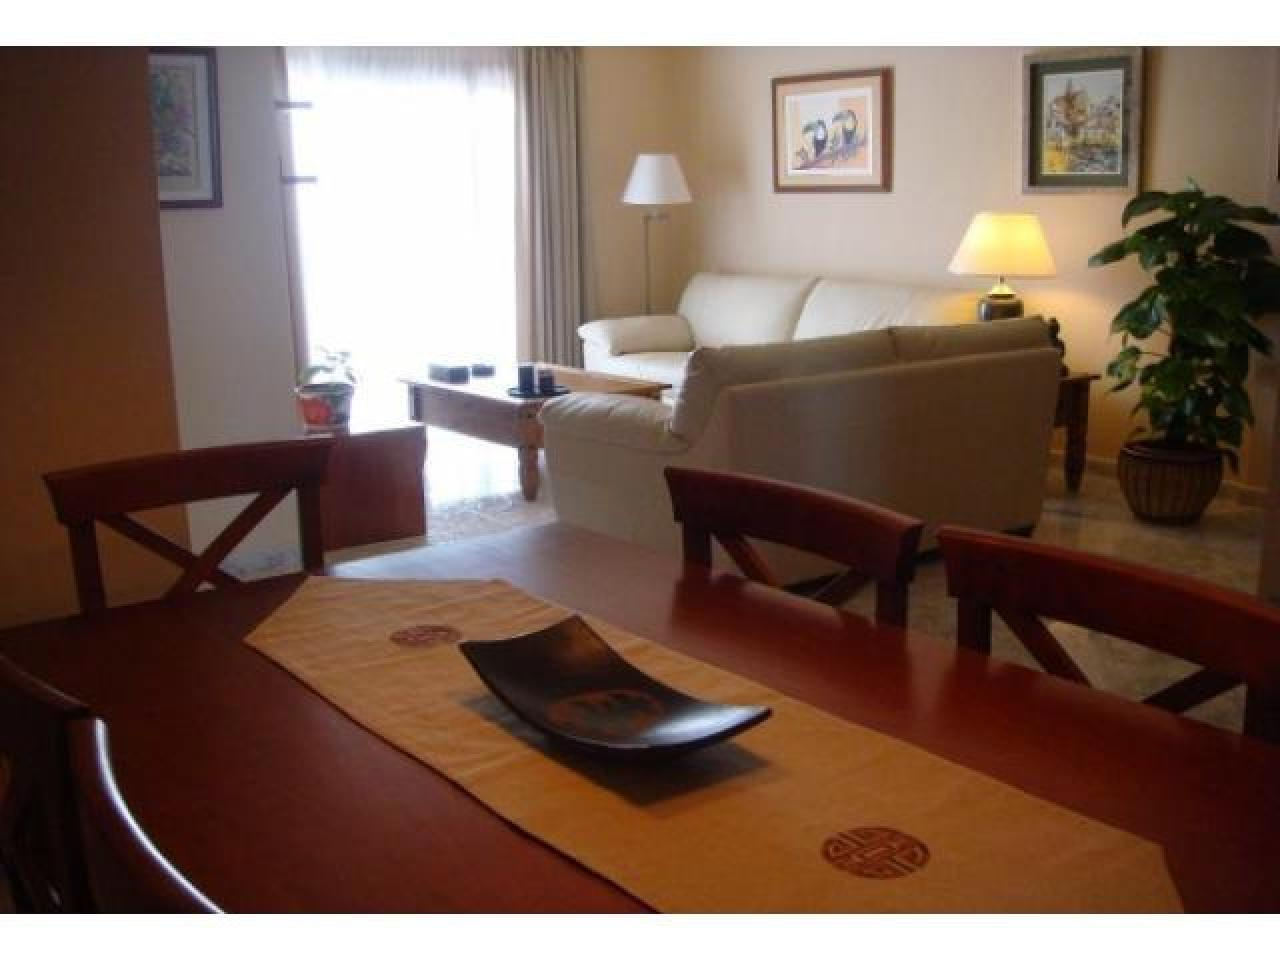 Real estate in Tenerife for sale » #127 - 2